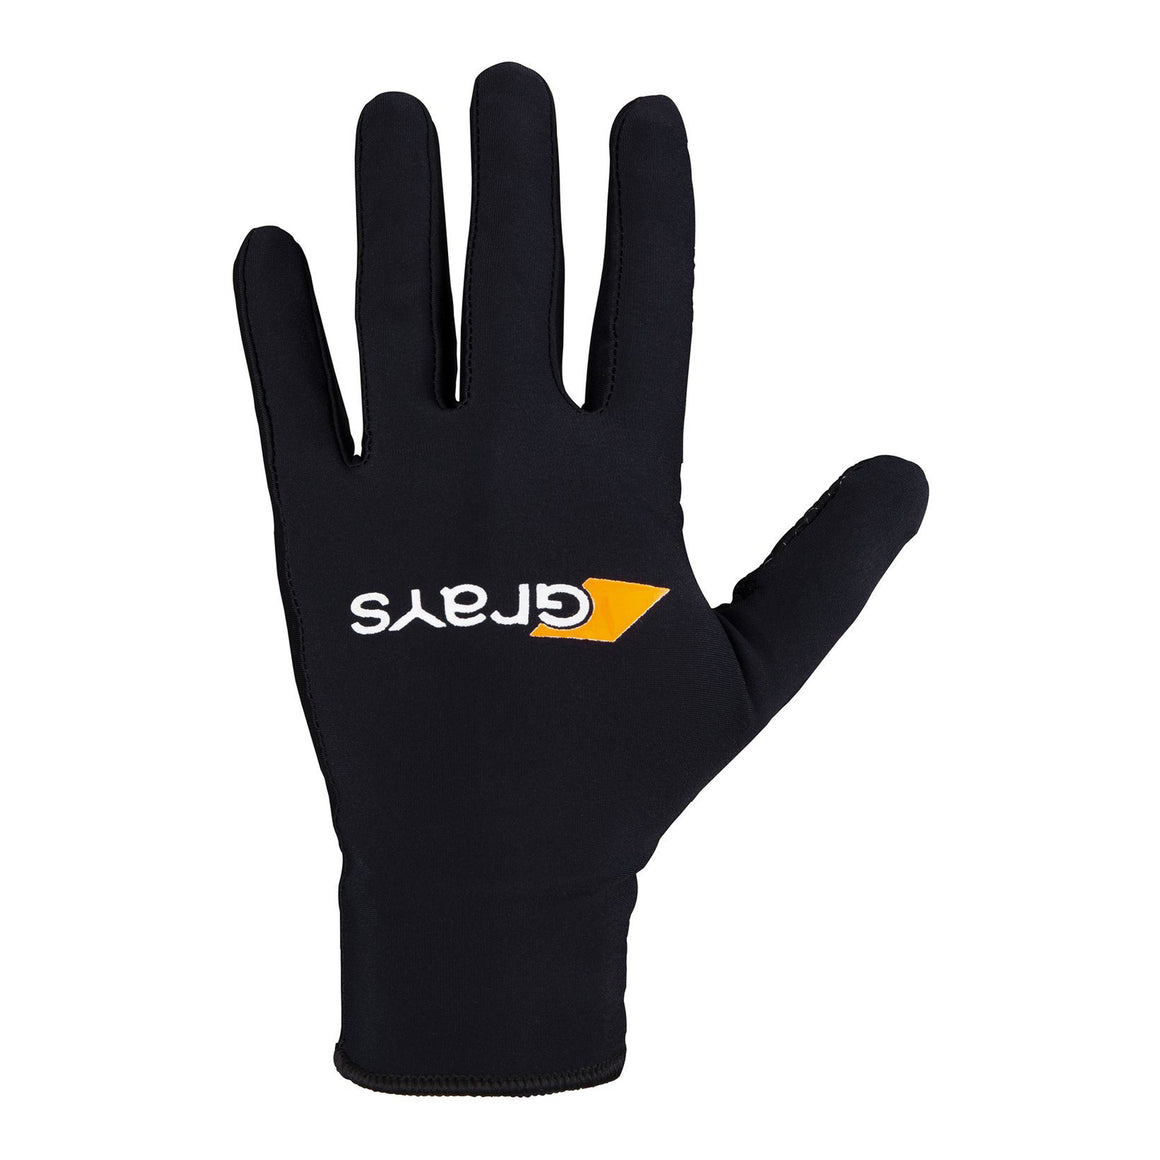 Skinful Pro Gloves for Men in Black